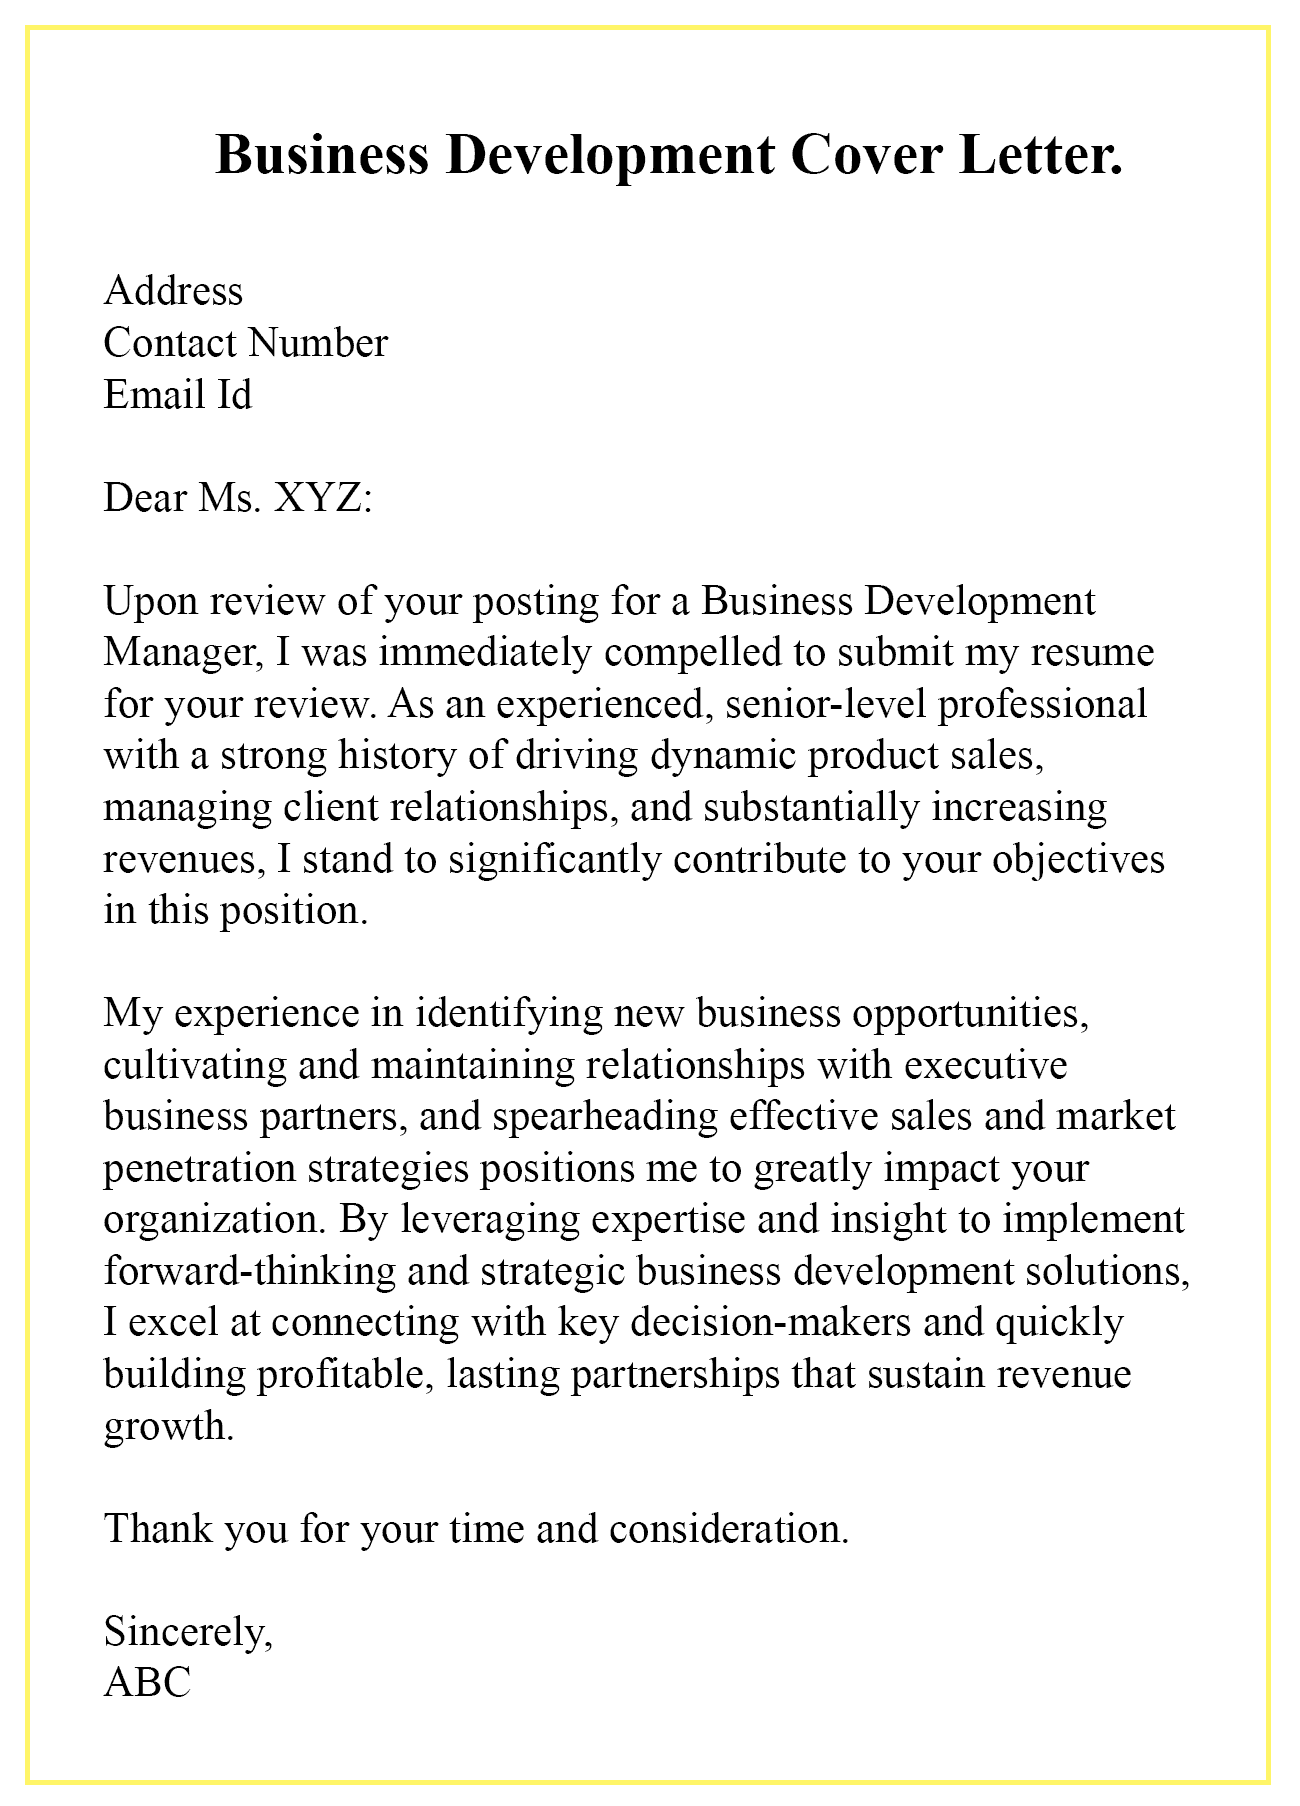 How To Write A Business Development Cover Letter With